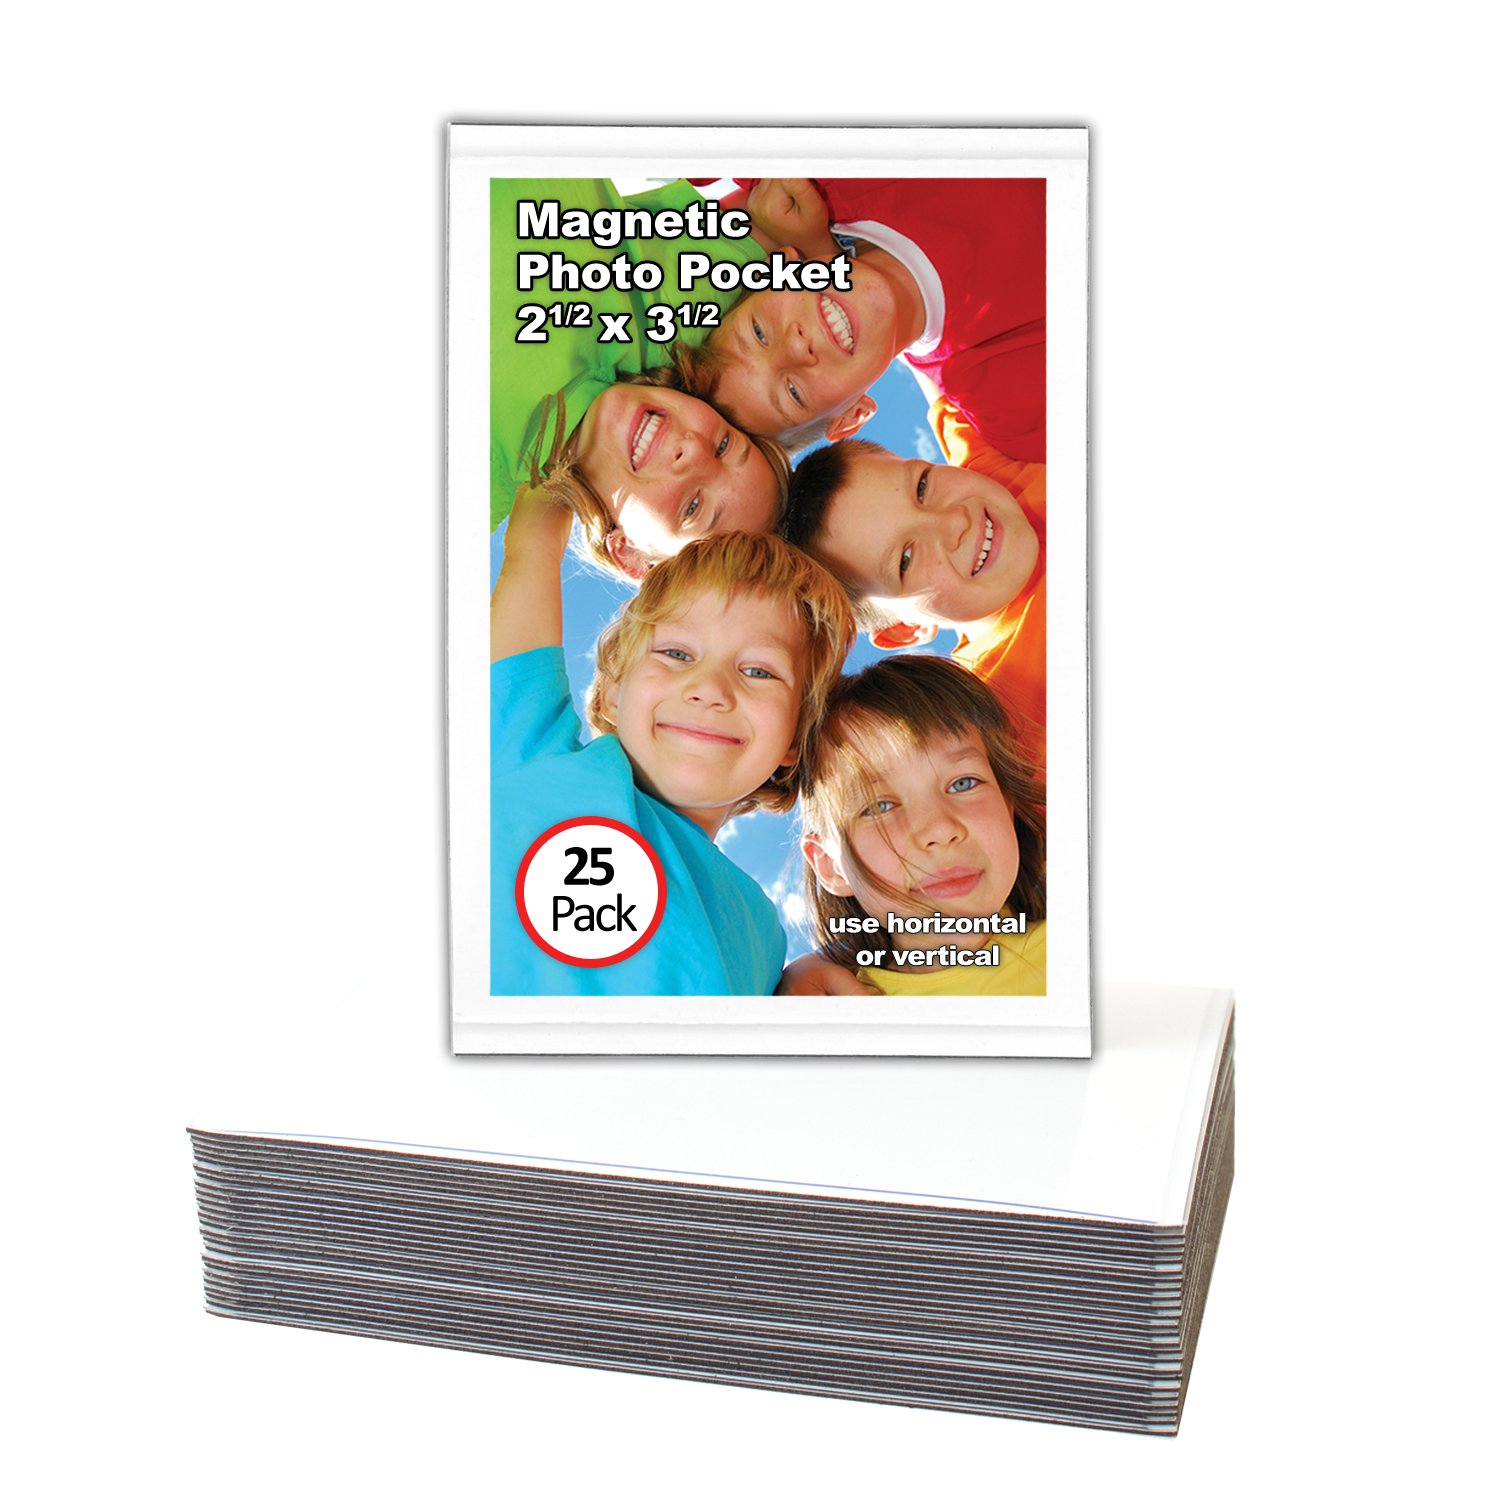 Magtech Magnetic Photo Pocket Picture Frame, White, Holds 2.5 x 3.5 Inches Photos, 25 Pack (12325)